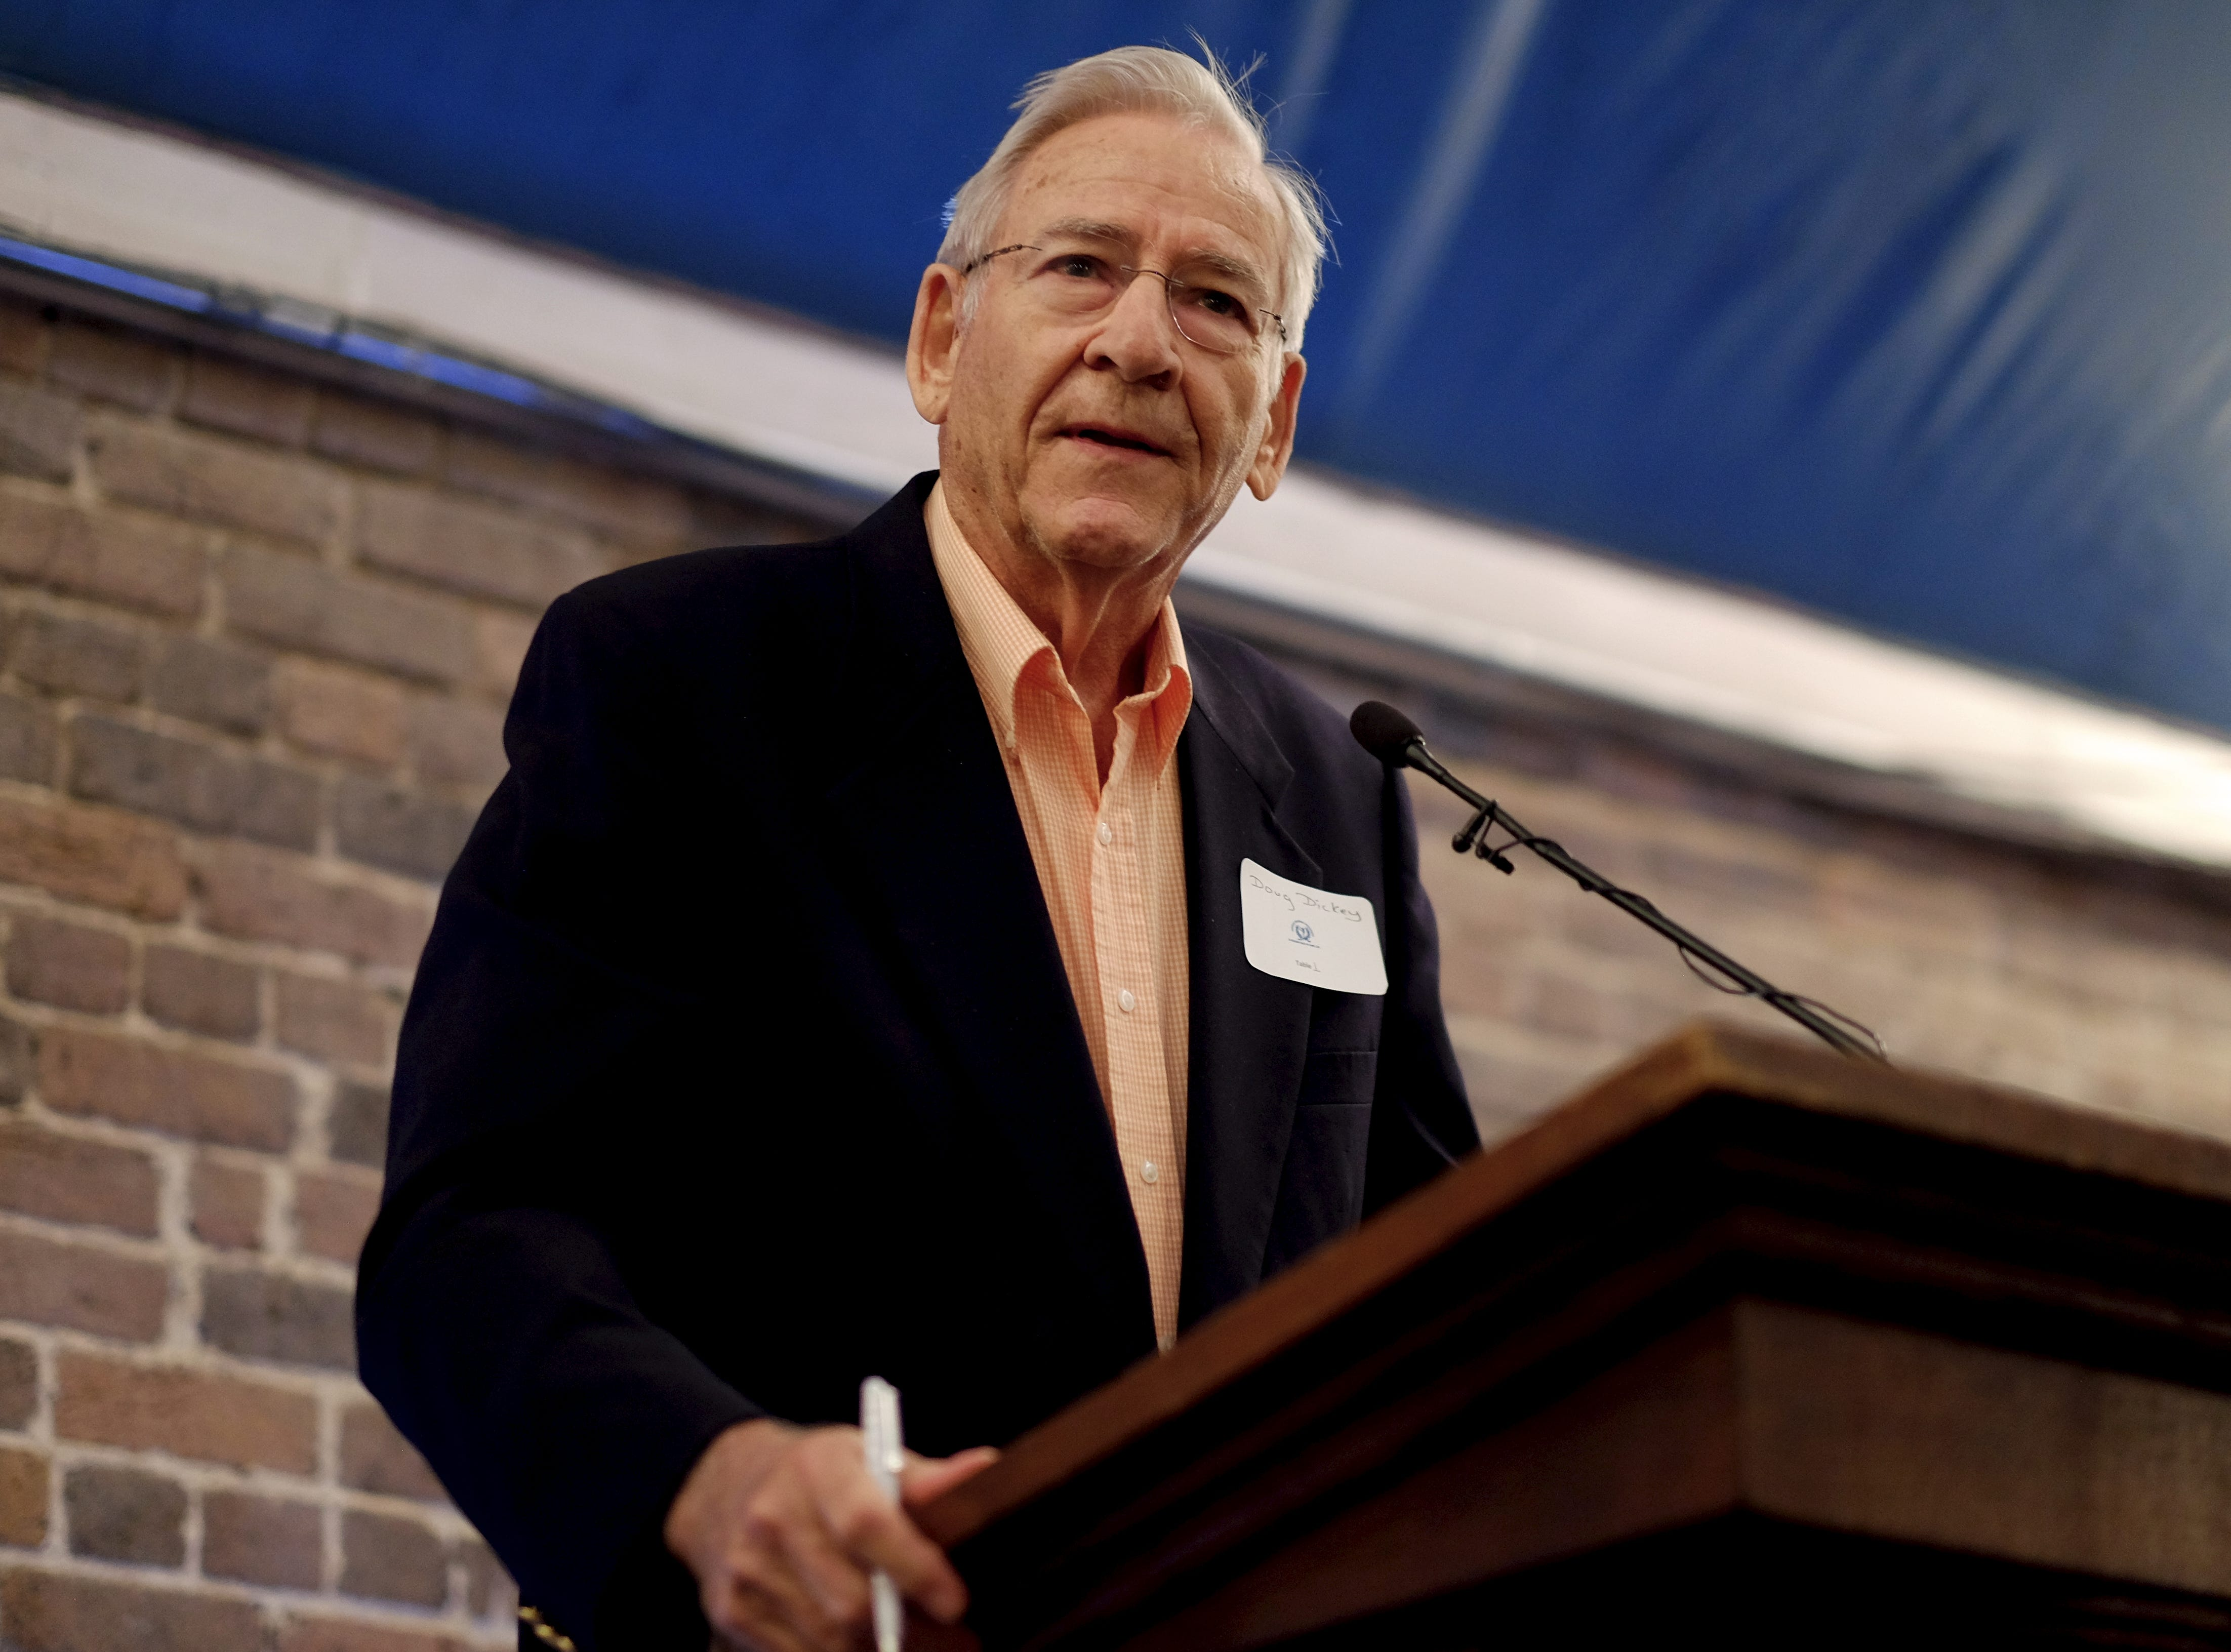 Former college football player and coach, Doug Dickey, delivers his speech to introduce Steve Spurrier as the recipient of this year's 2016 R.R. Neyland Memorial Award presented by the Knoxville Quarterback Club during the awards ceremony at the Foundry in Knoxville, on Saturday, April 16, 2016.